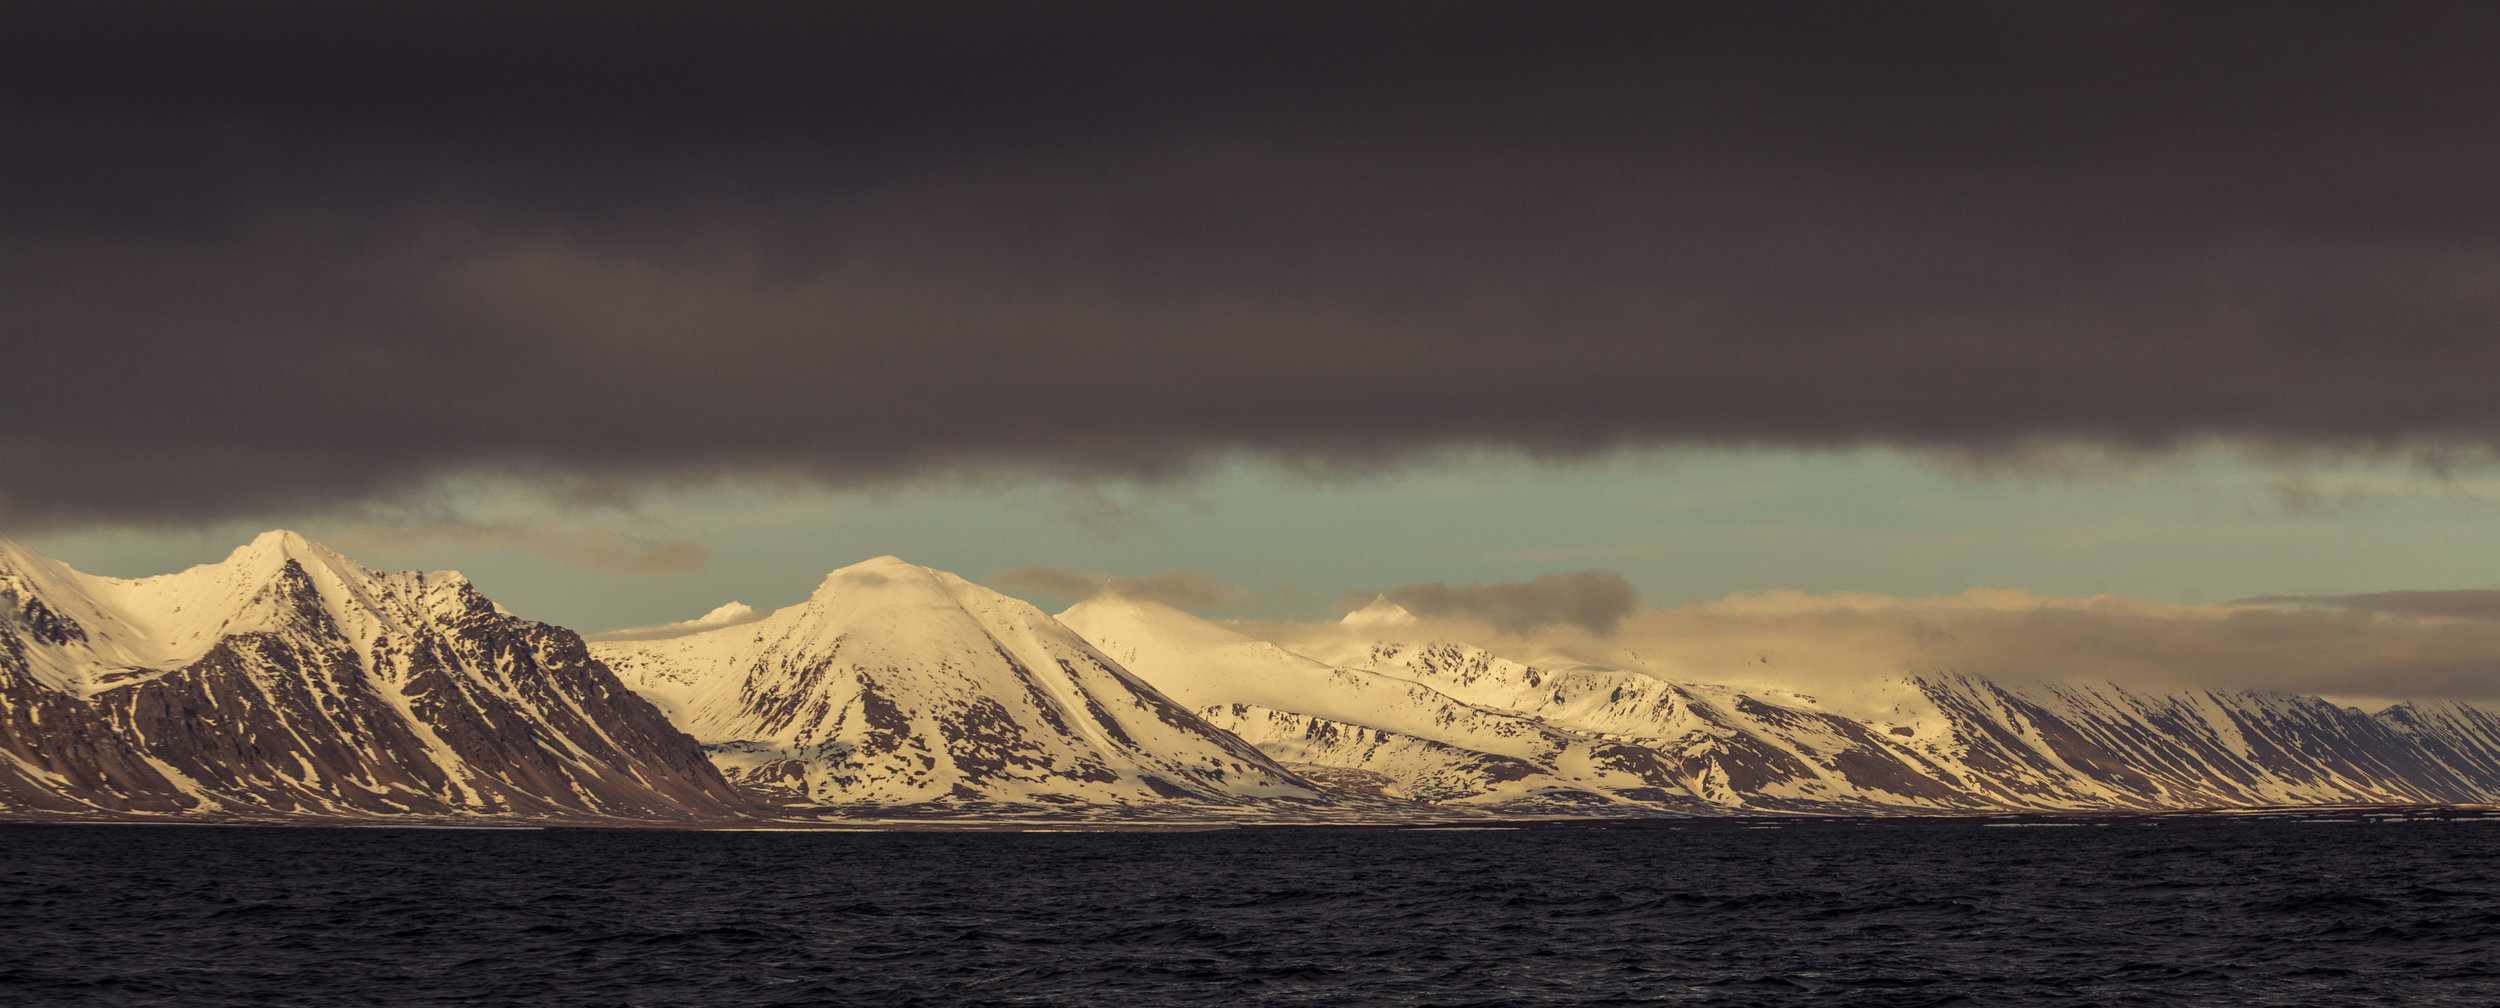 Rock, ice and snow - our constant companions on our sailing adventure